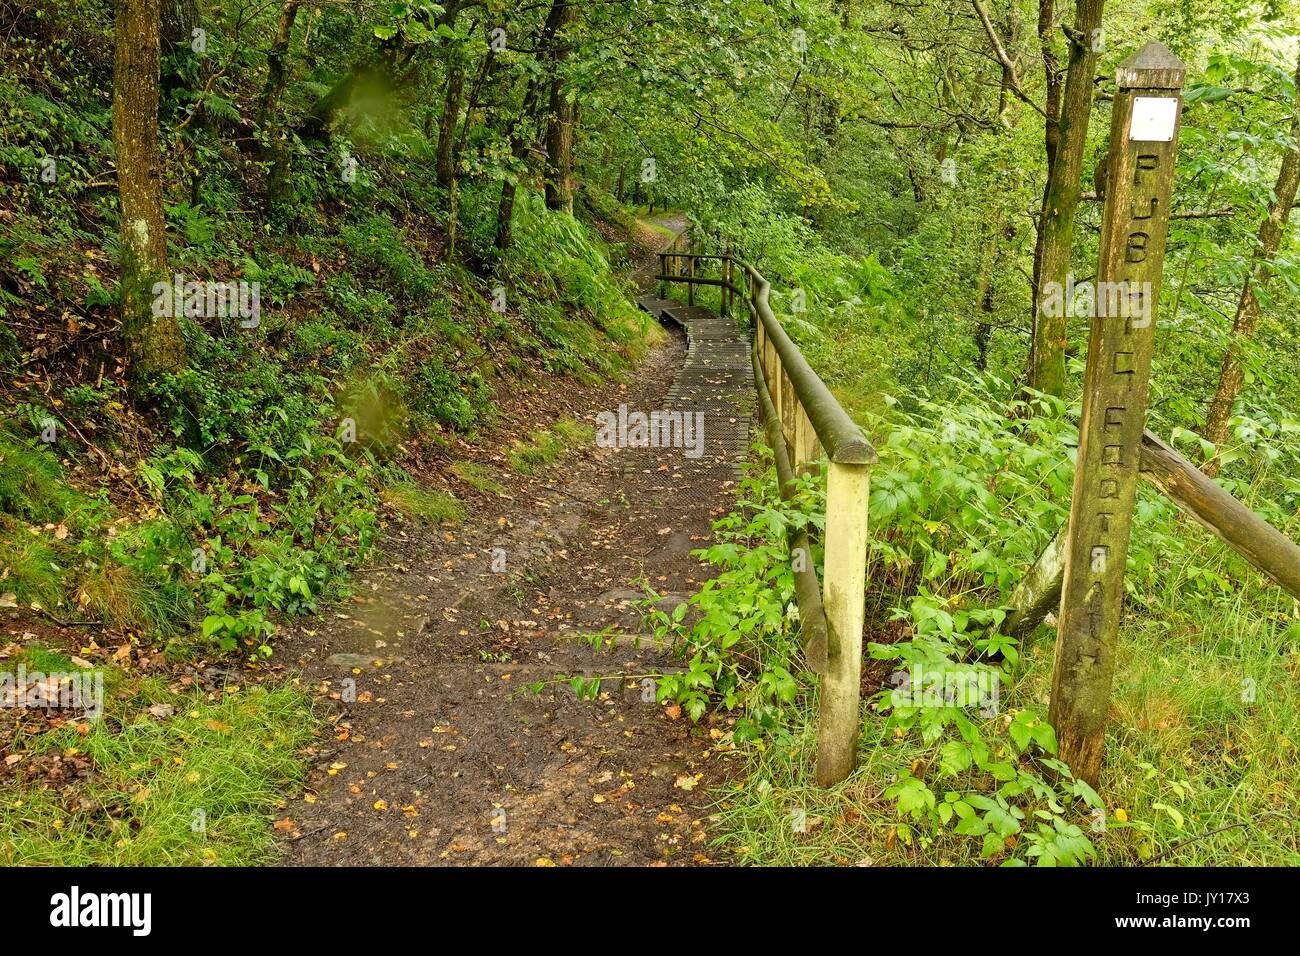 Foot path - Stock Image